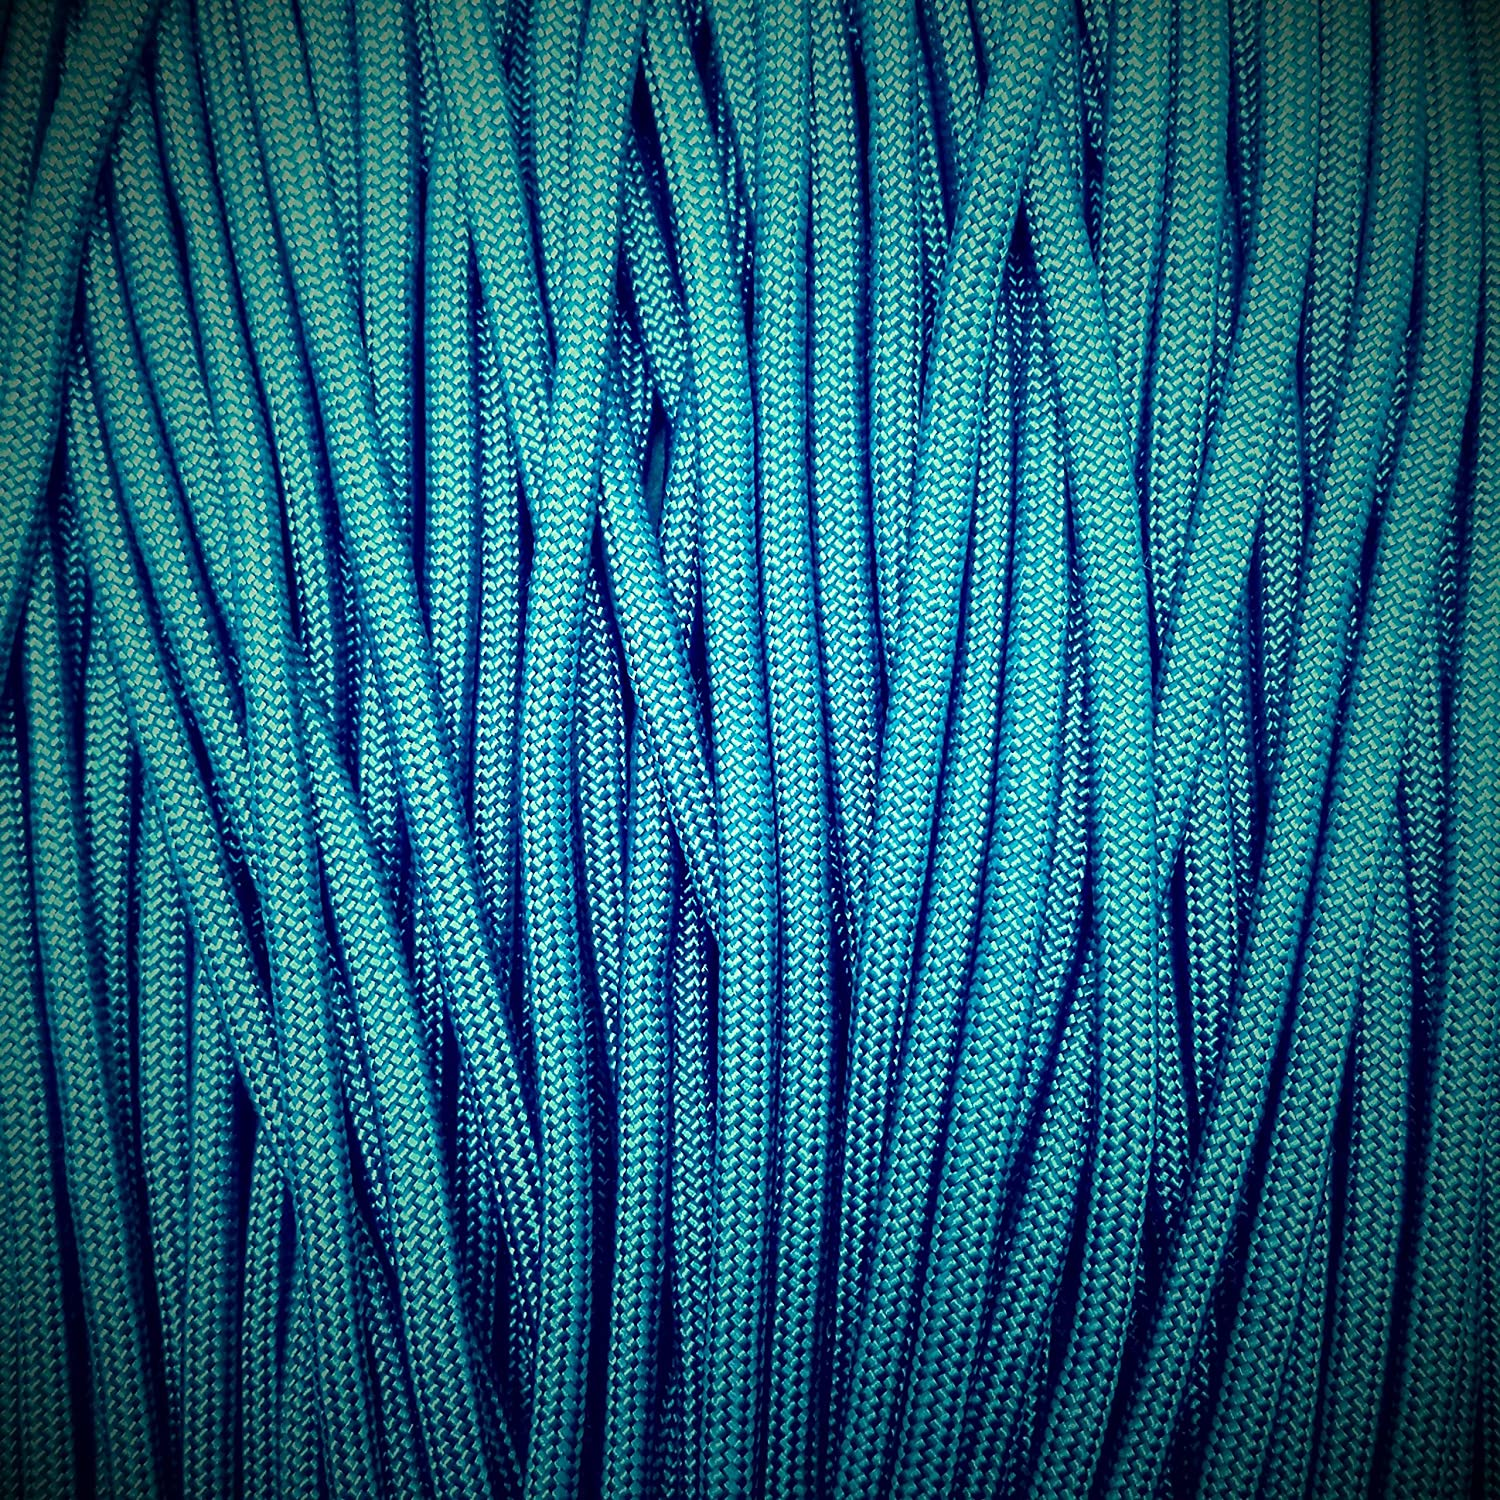 Wild Elk American 550 4 Mm Type Iii Commercial 7 Strand Parachute Cord